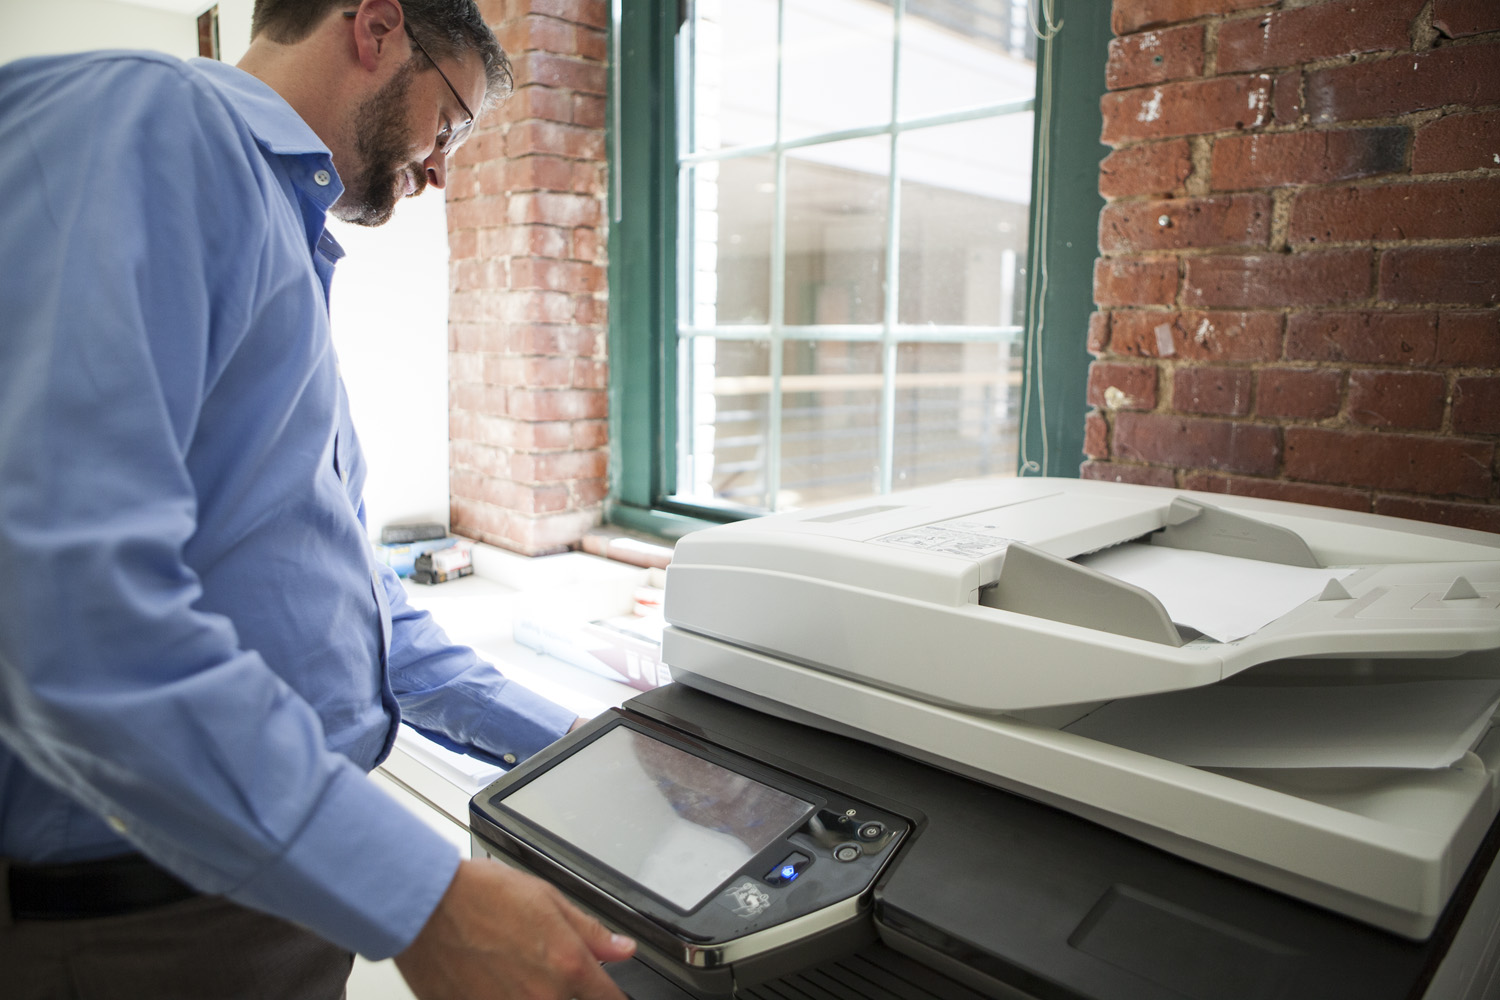 Leading Suppliers of Multifunction Printers and Photocopiers in Ireland | PCI Group